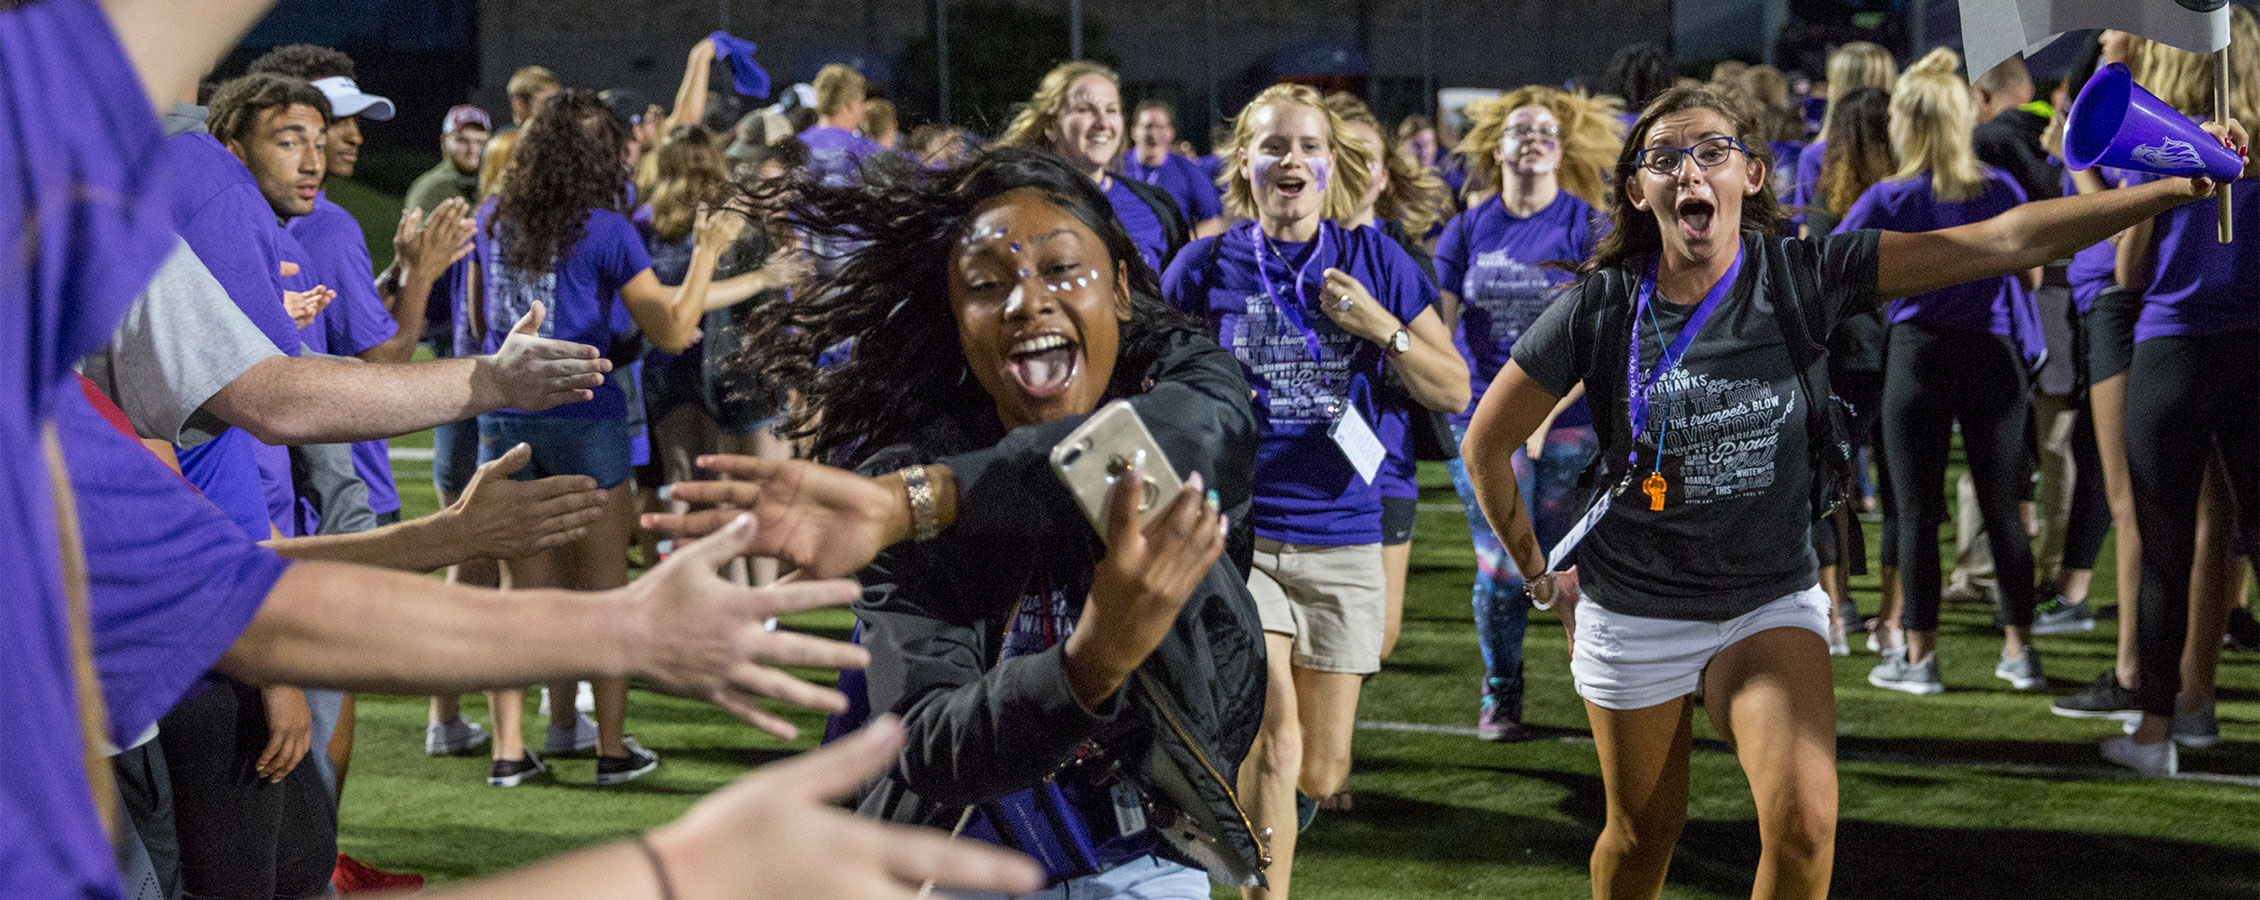 First-year students (freshman) and their peer mentors run through a human welcome tunnel of students and staff.